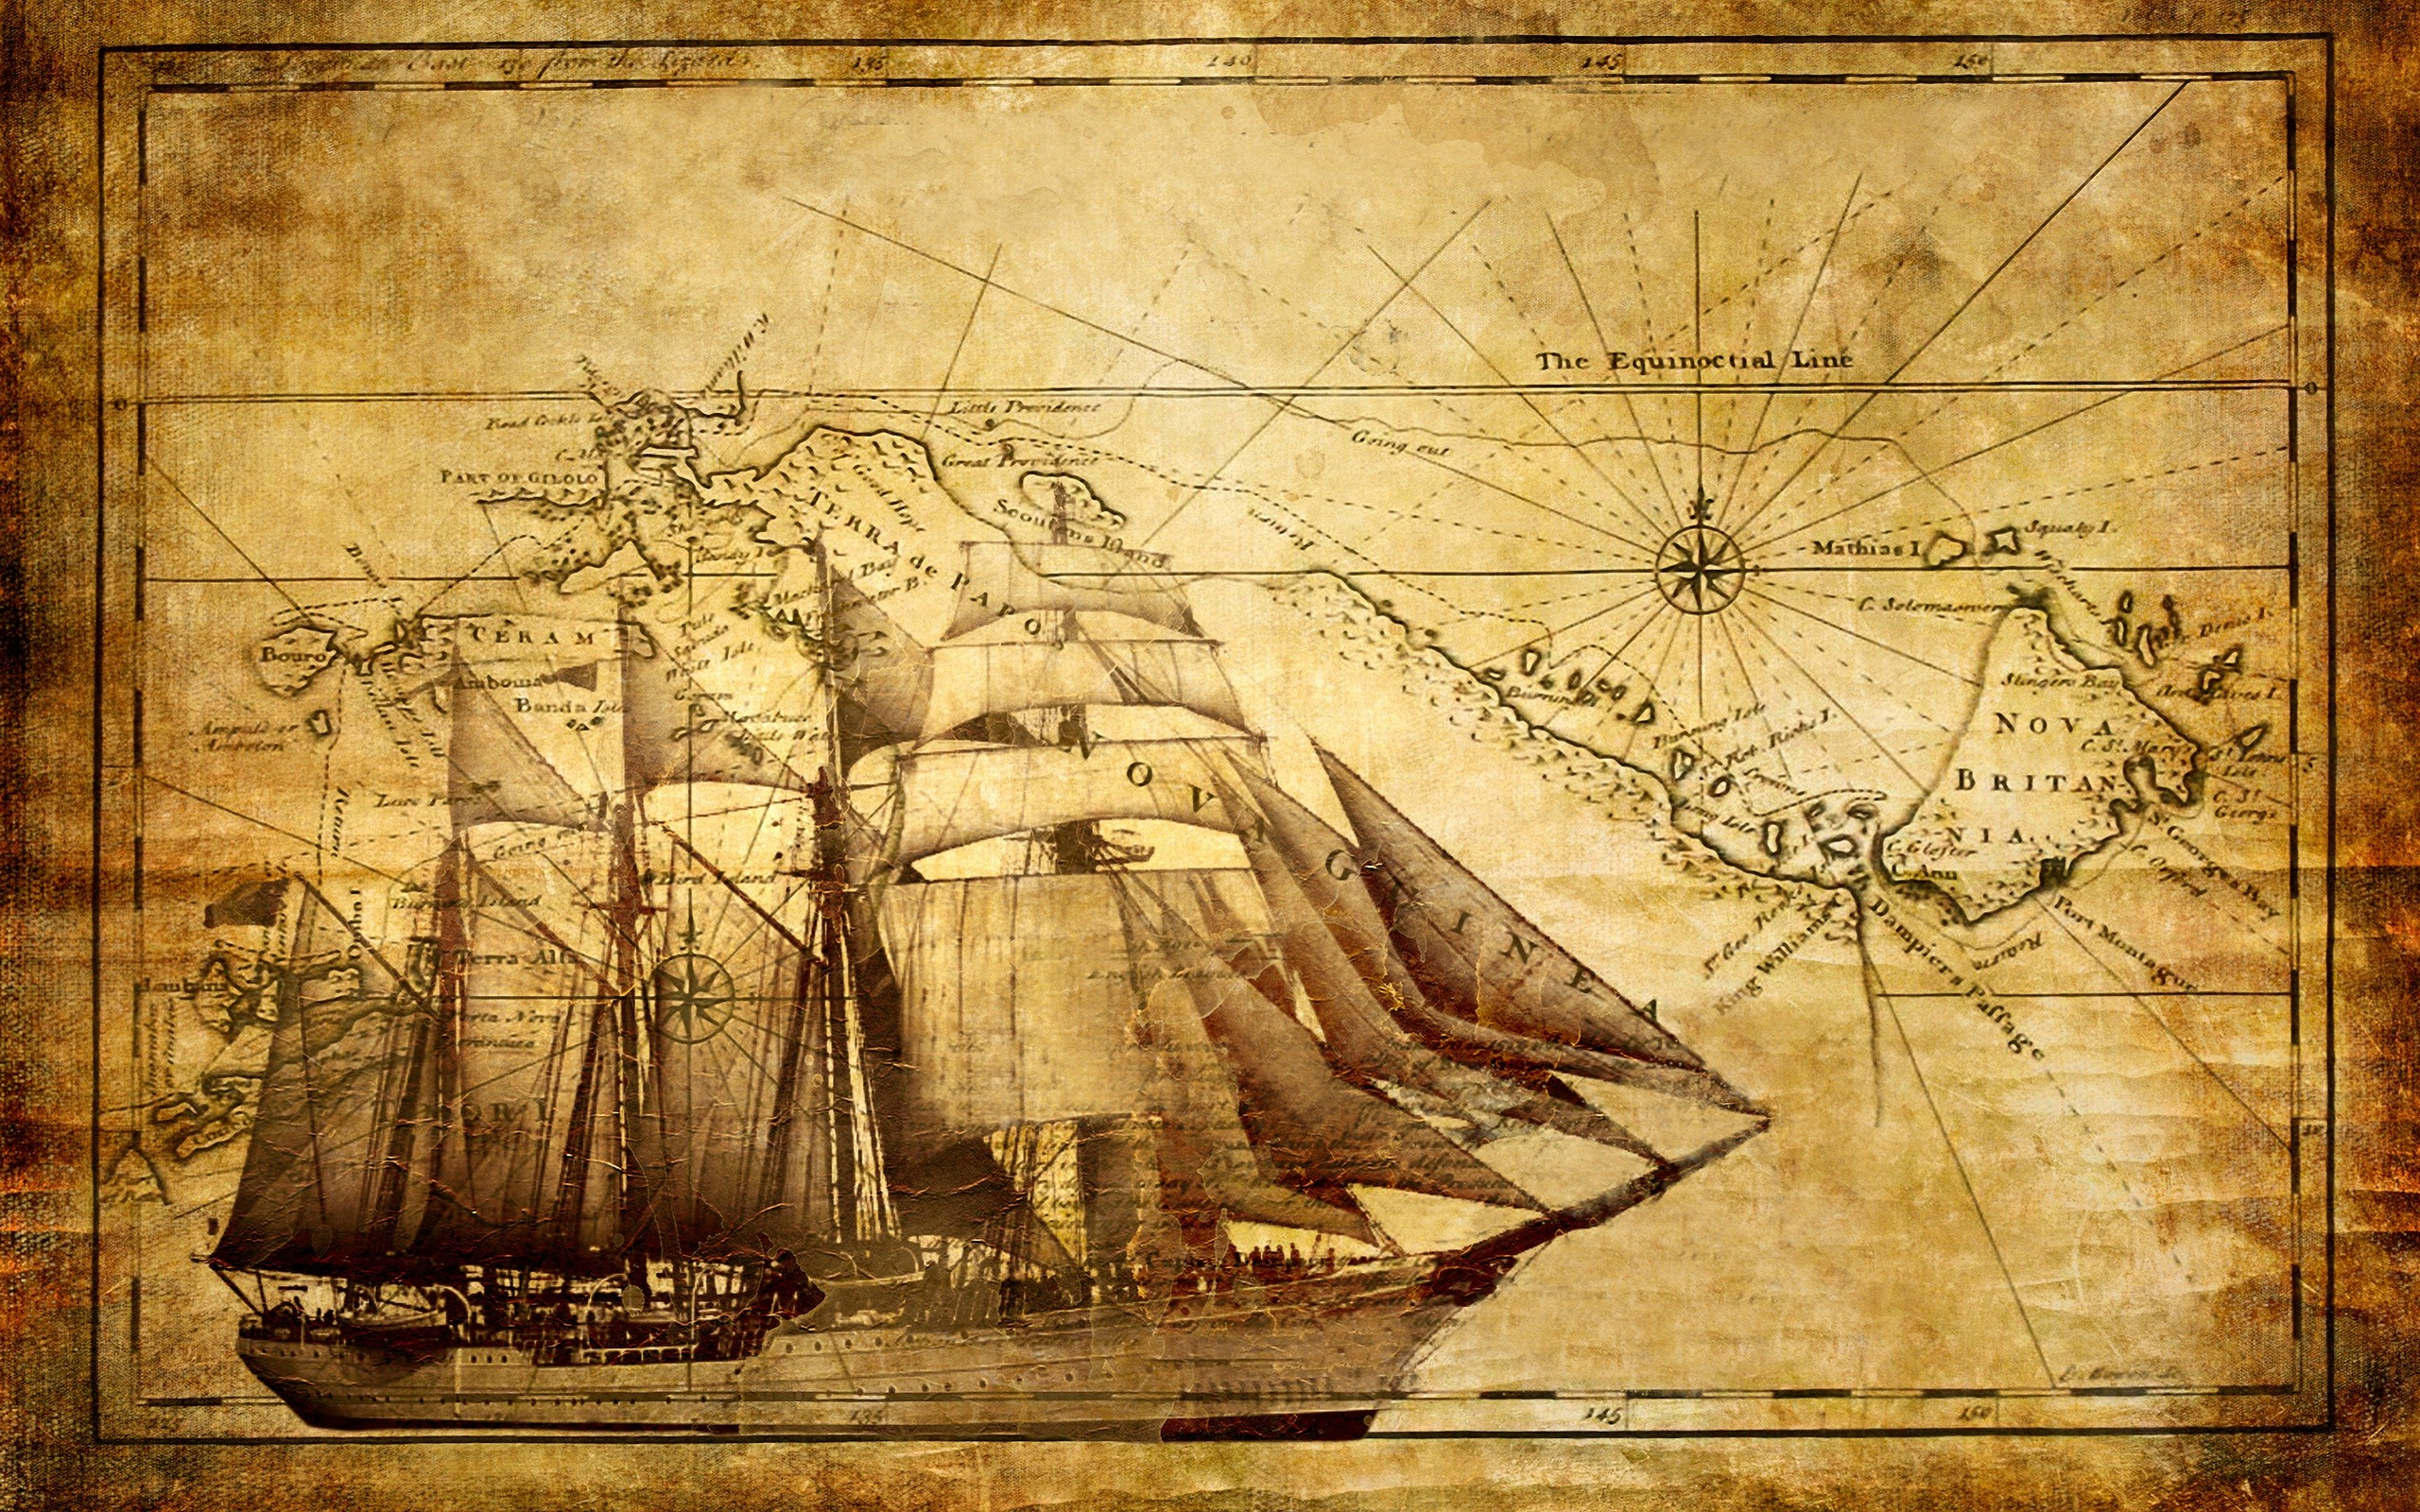 Ship hd wallpaper background image 2560x1600 id 330650 wallpaper abyss - Pirate background ...